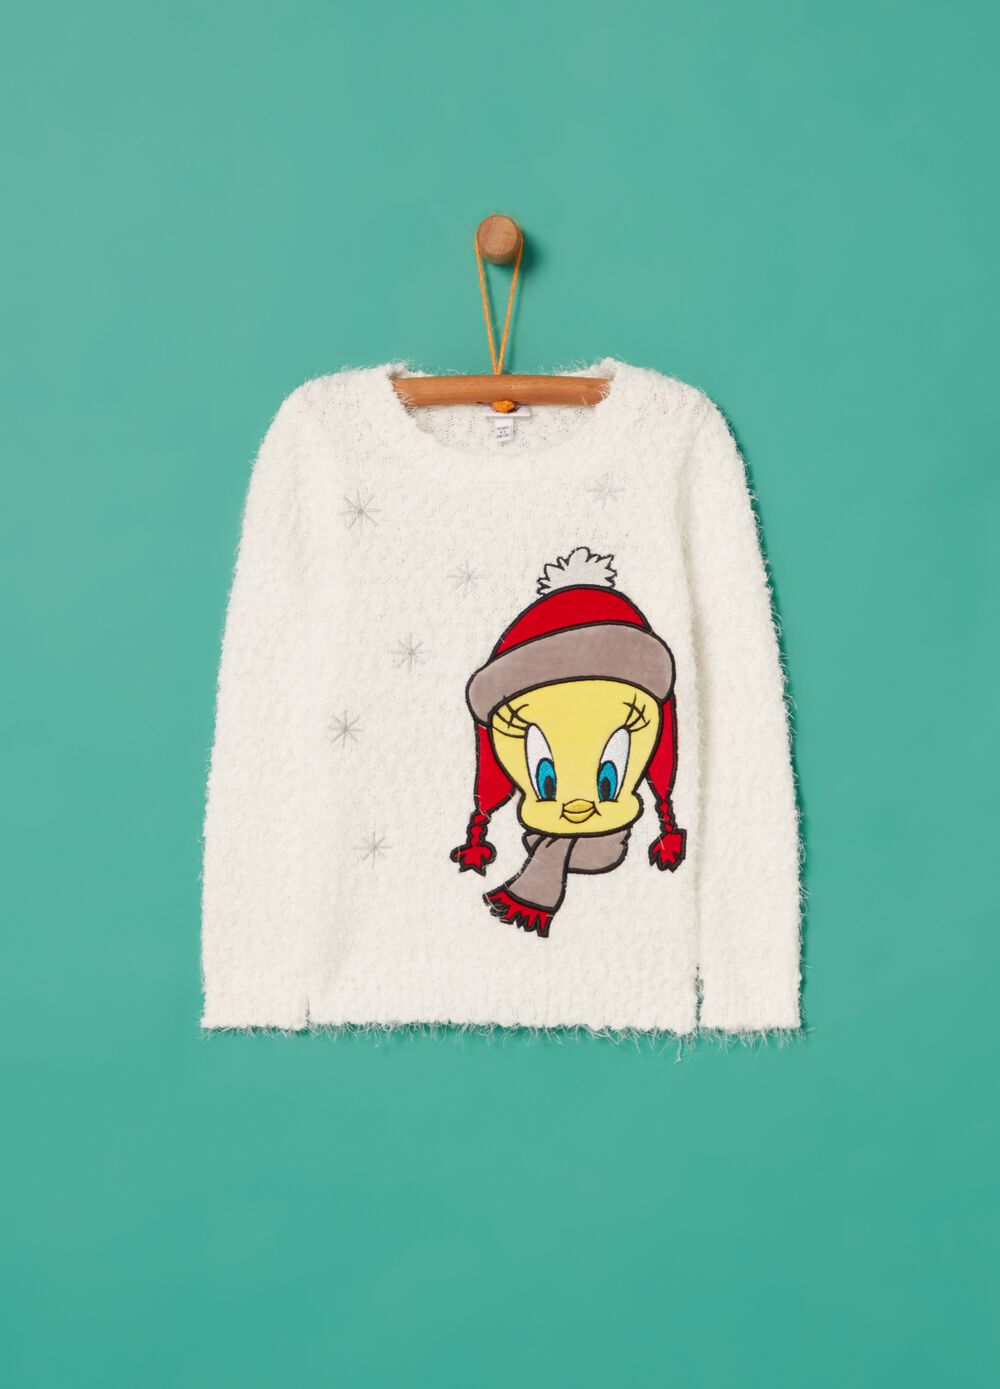 Knitted pullover with Warner Bros Tweetie Pie embroidery